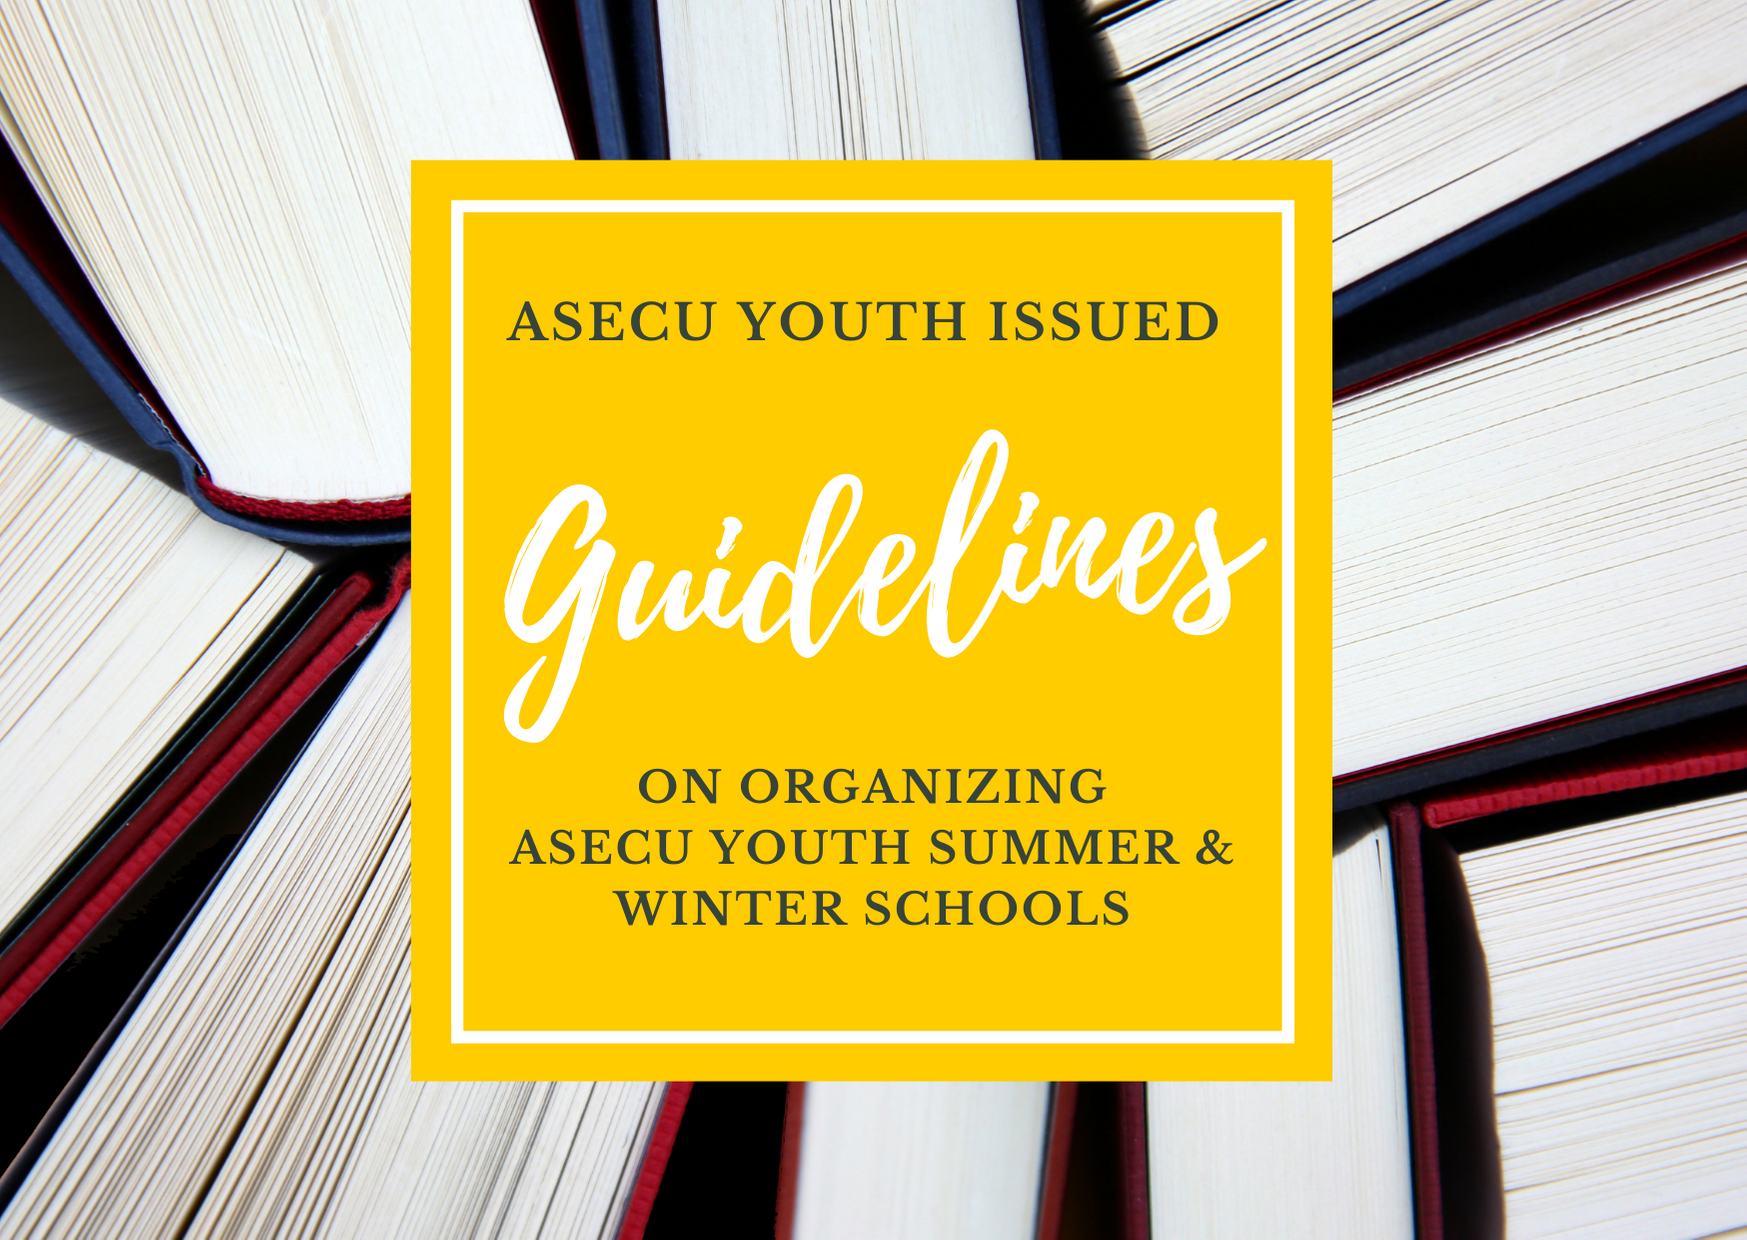 ASECU Youth Schools Guidelines for ASECU Universities is available!